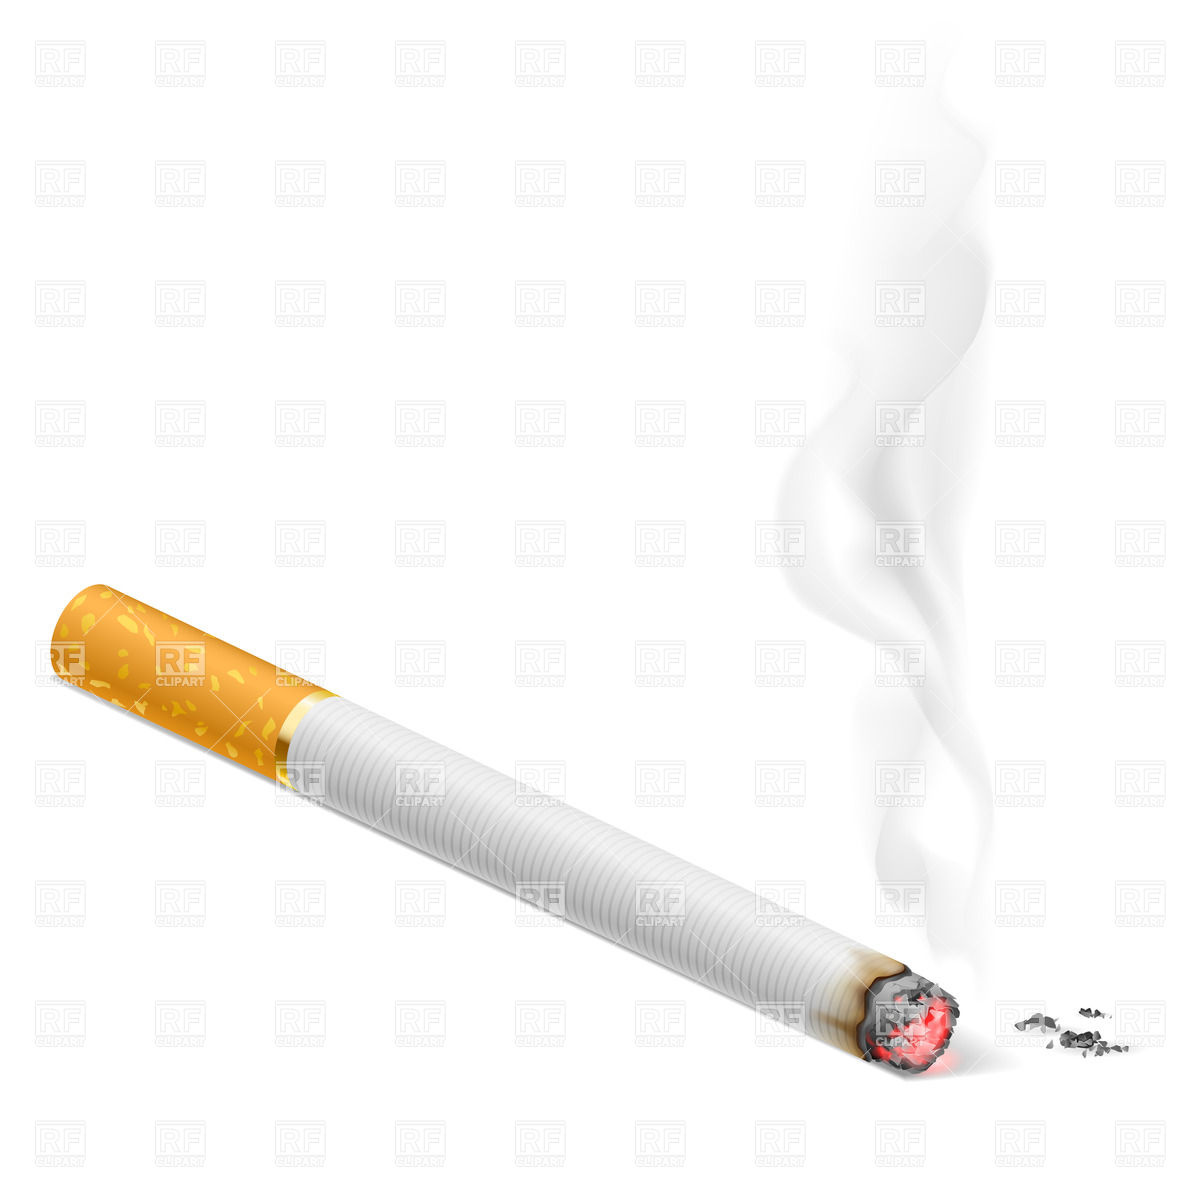 Clothes Of Cigarette Smoke In Clipart - Clipart Kid